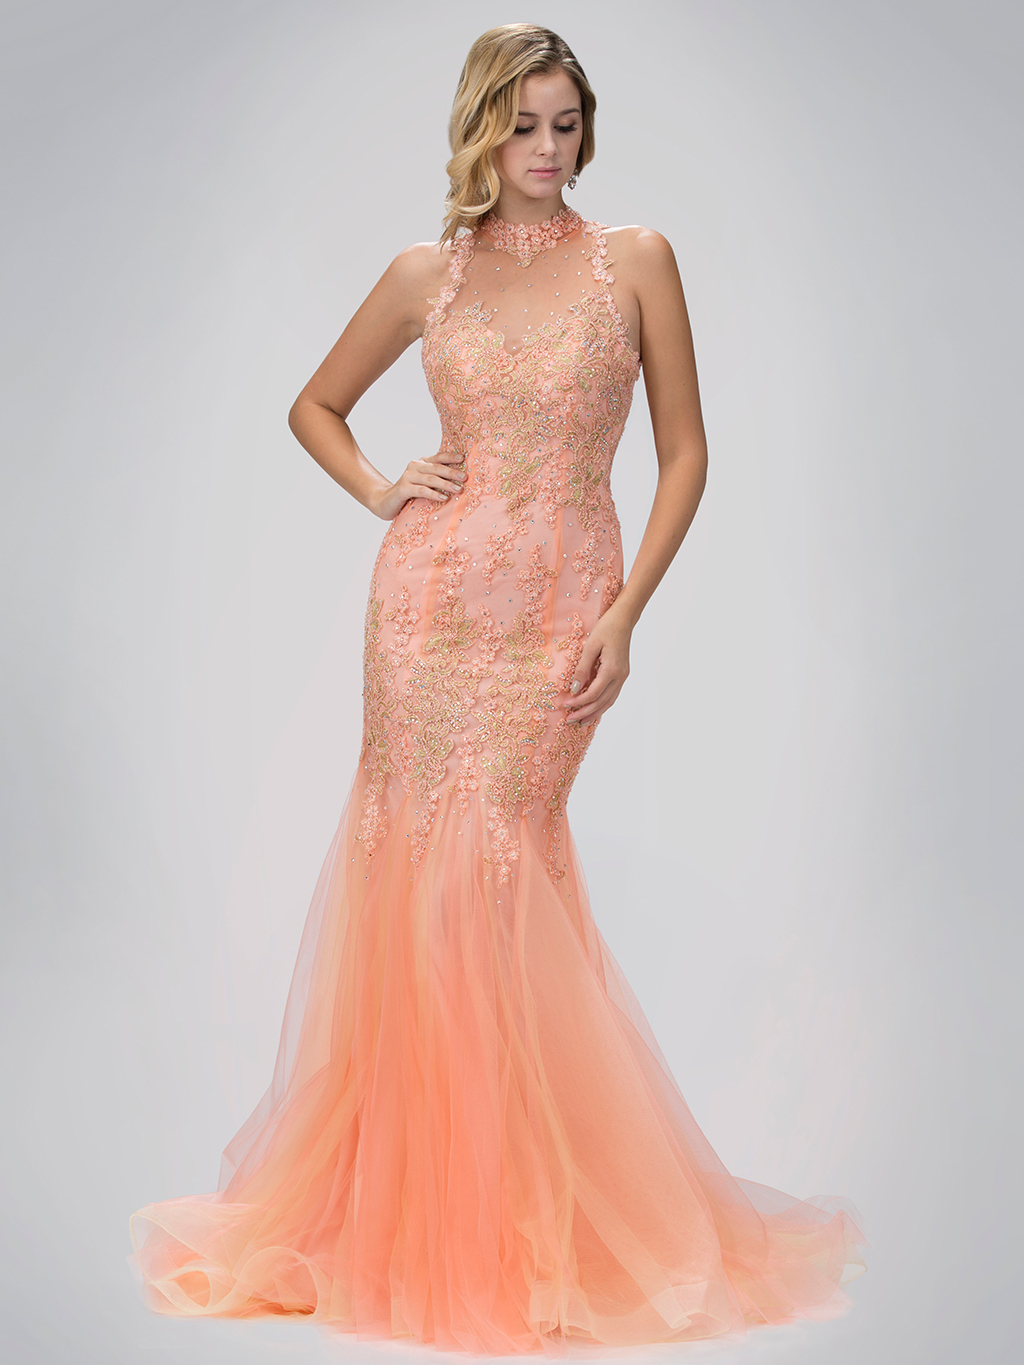 High Neck Prom Evening Dress With Mermaid Flare Sung